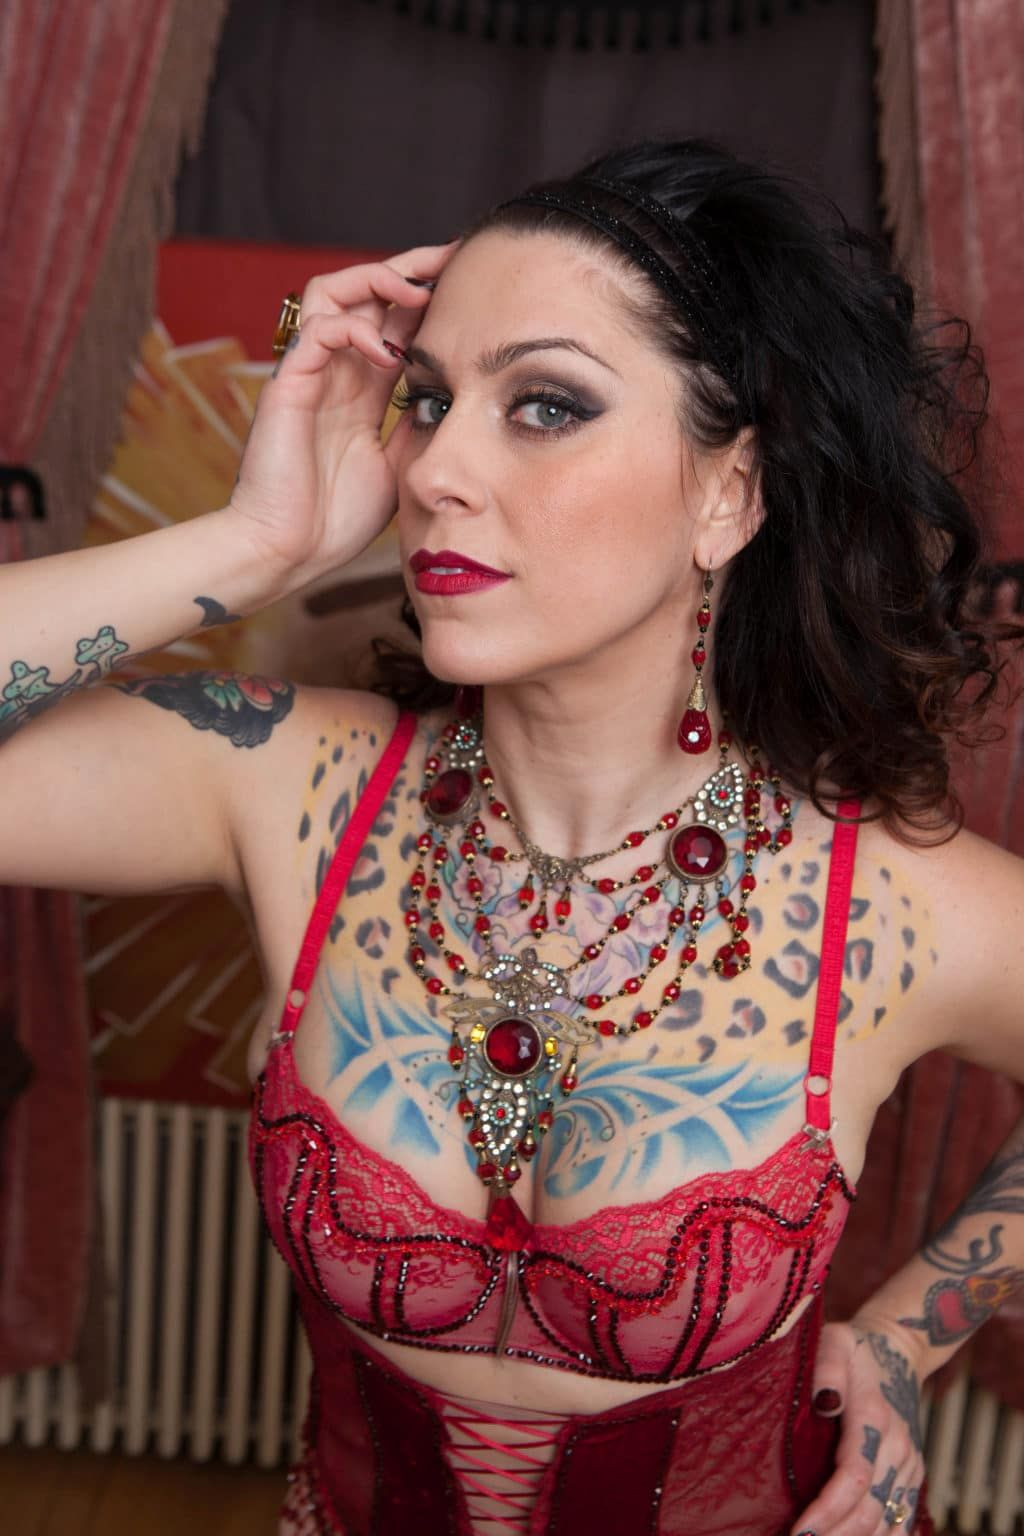 American Pickers Danielle Colby Naked american pickers danielle colby instagram - photos